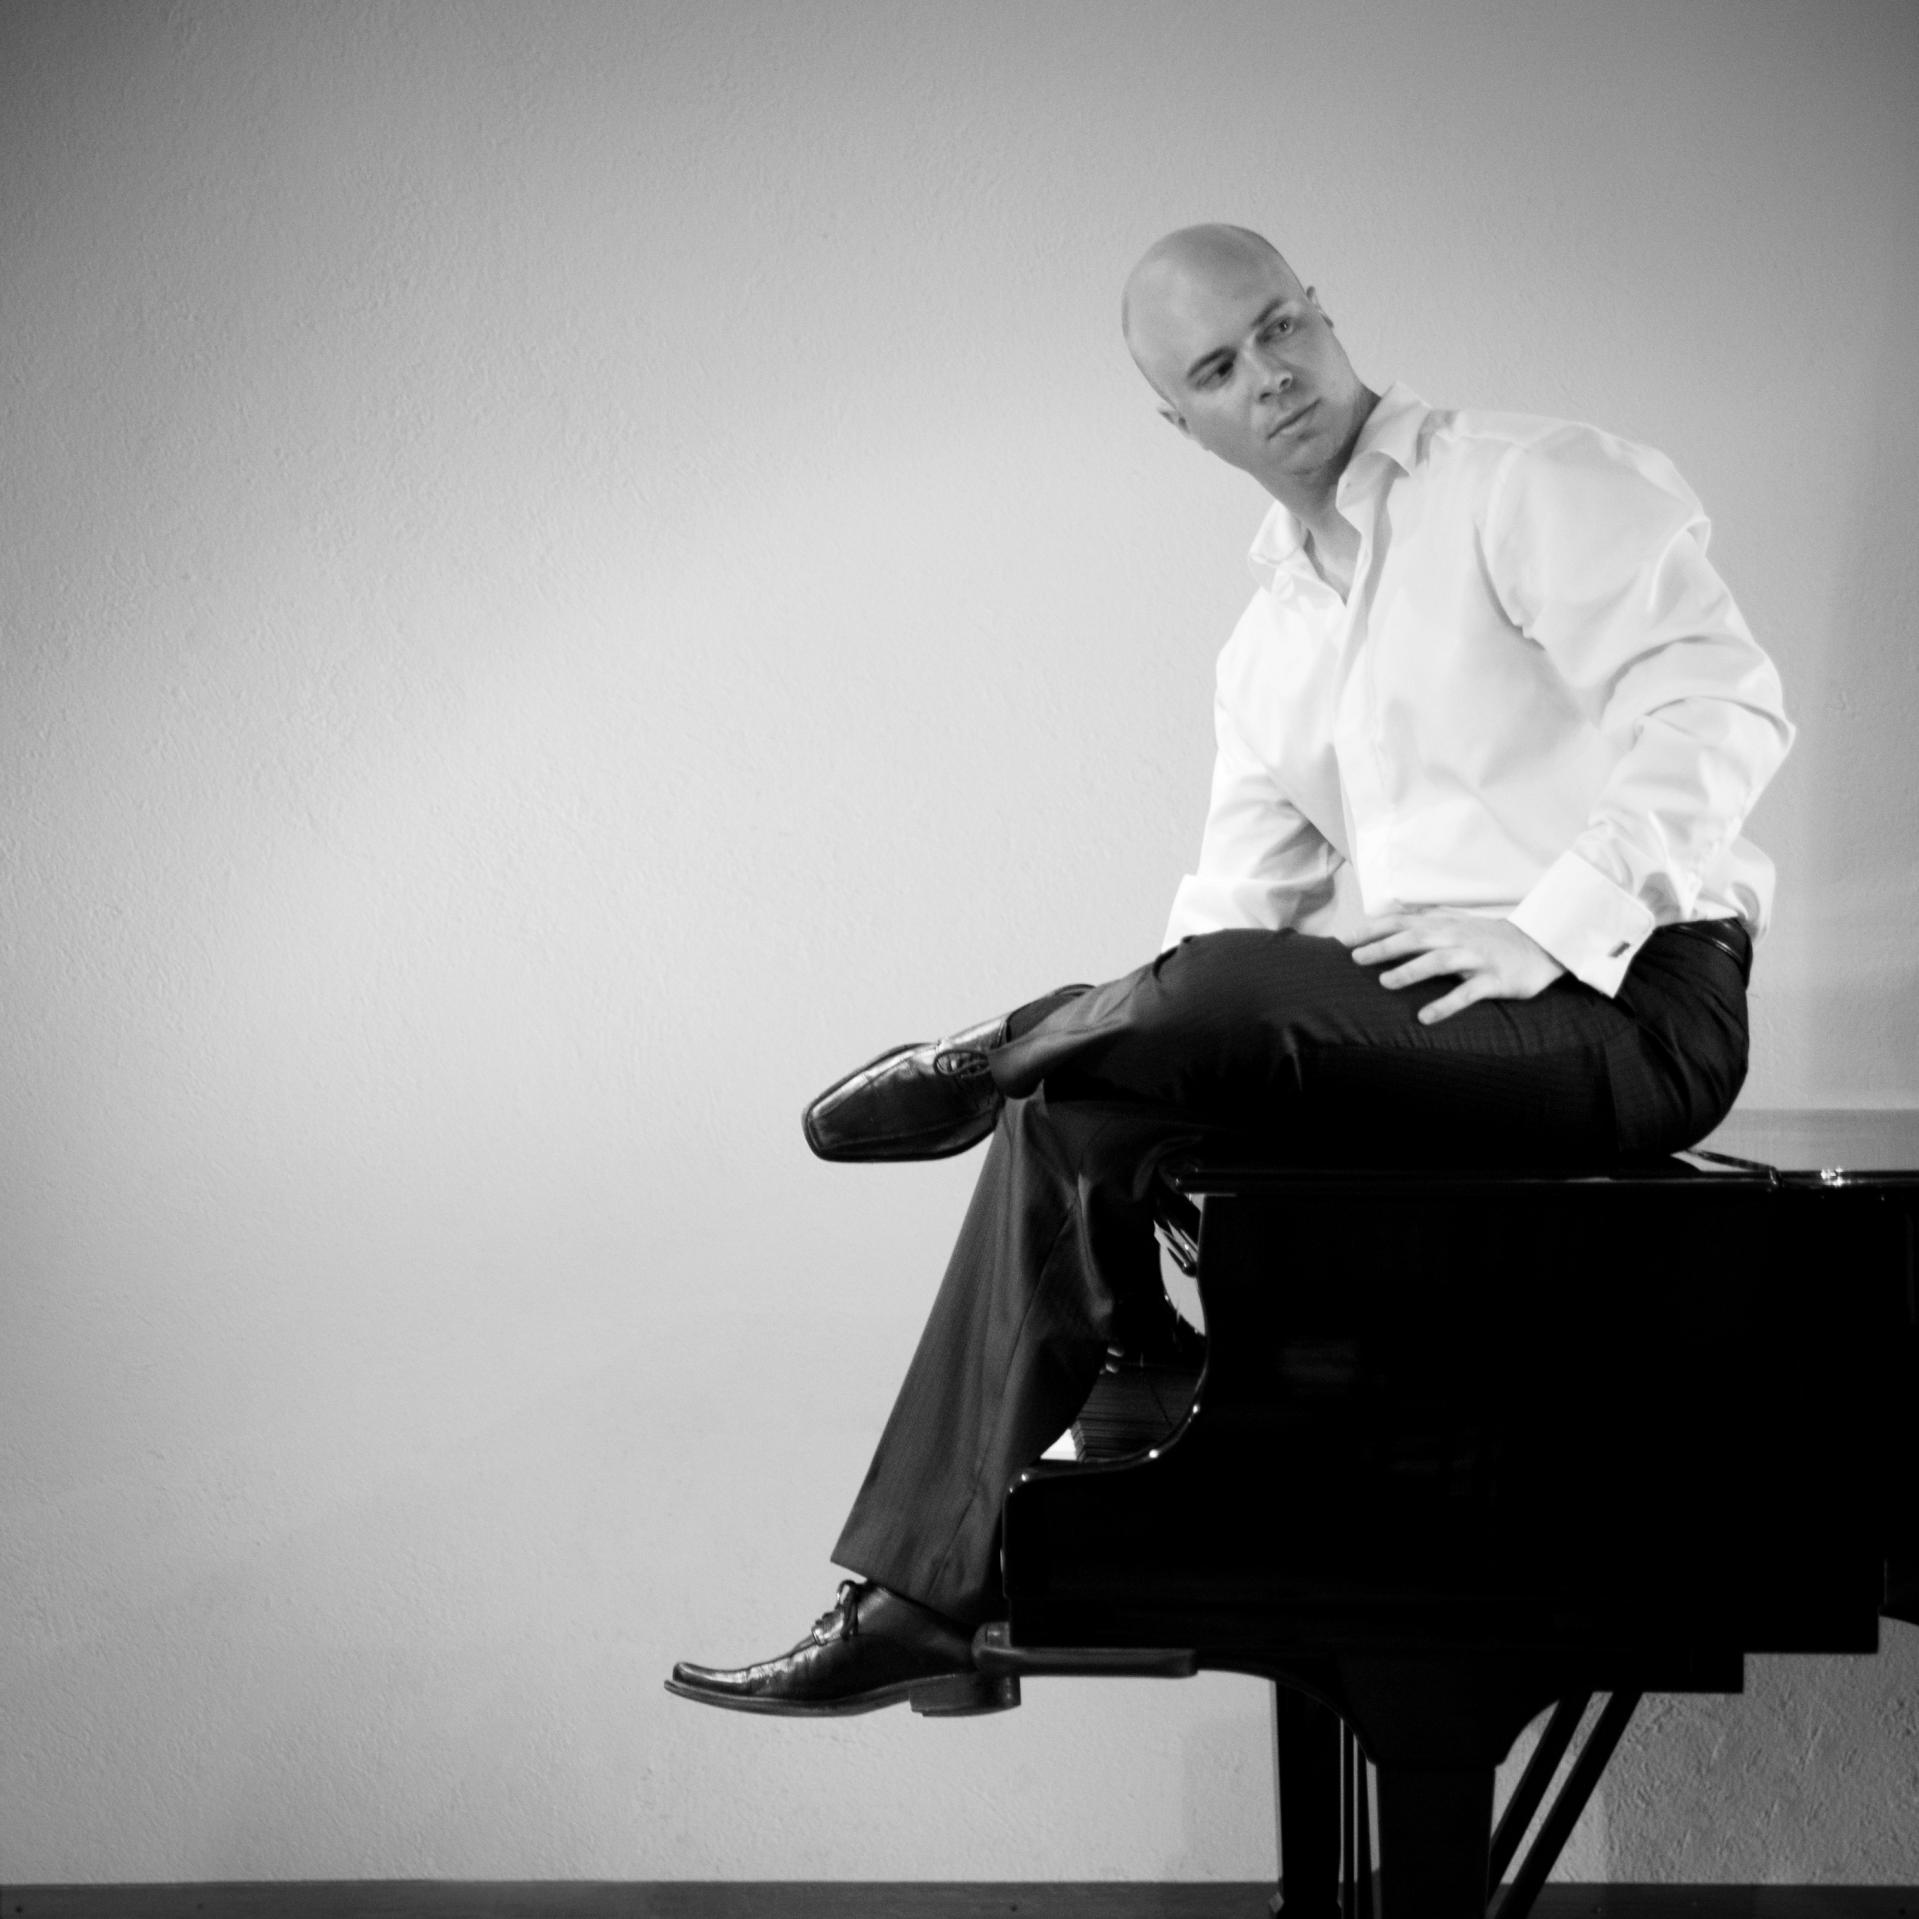 Christian Chamorel, pianist